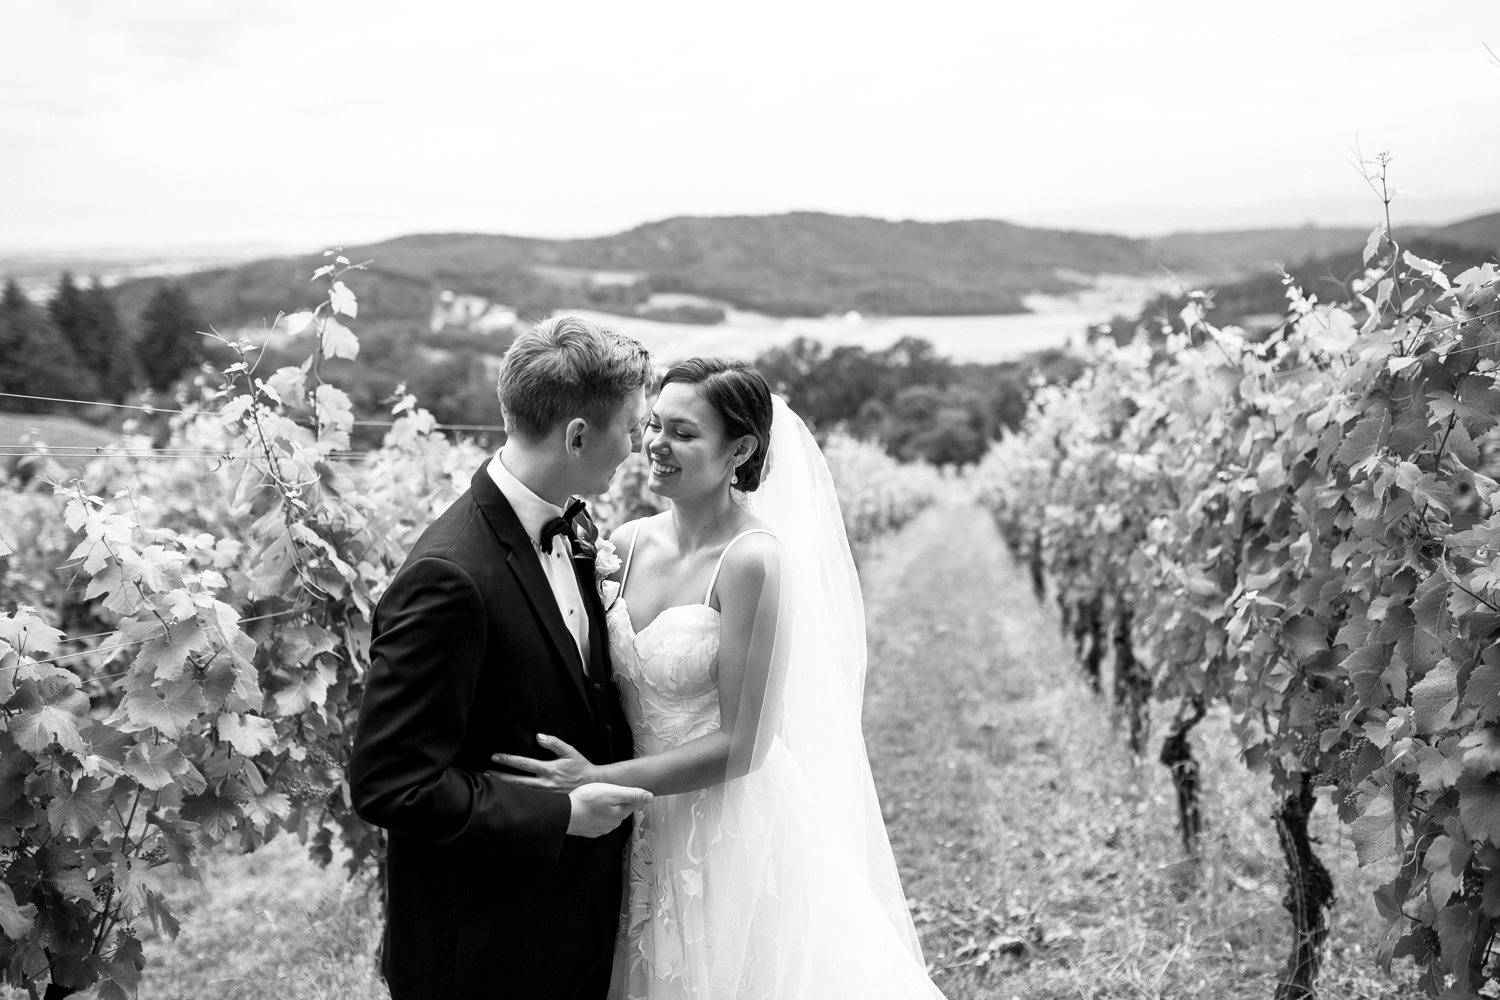 Youngberg Hill Vineyard Wedding in Wine Country Oregon - Corrie Mick Photography-58.jpg